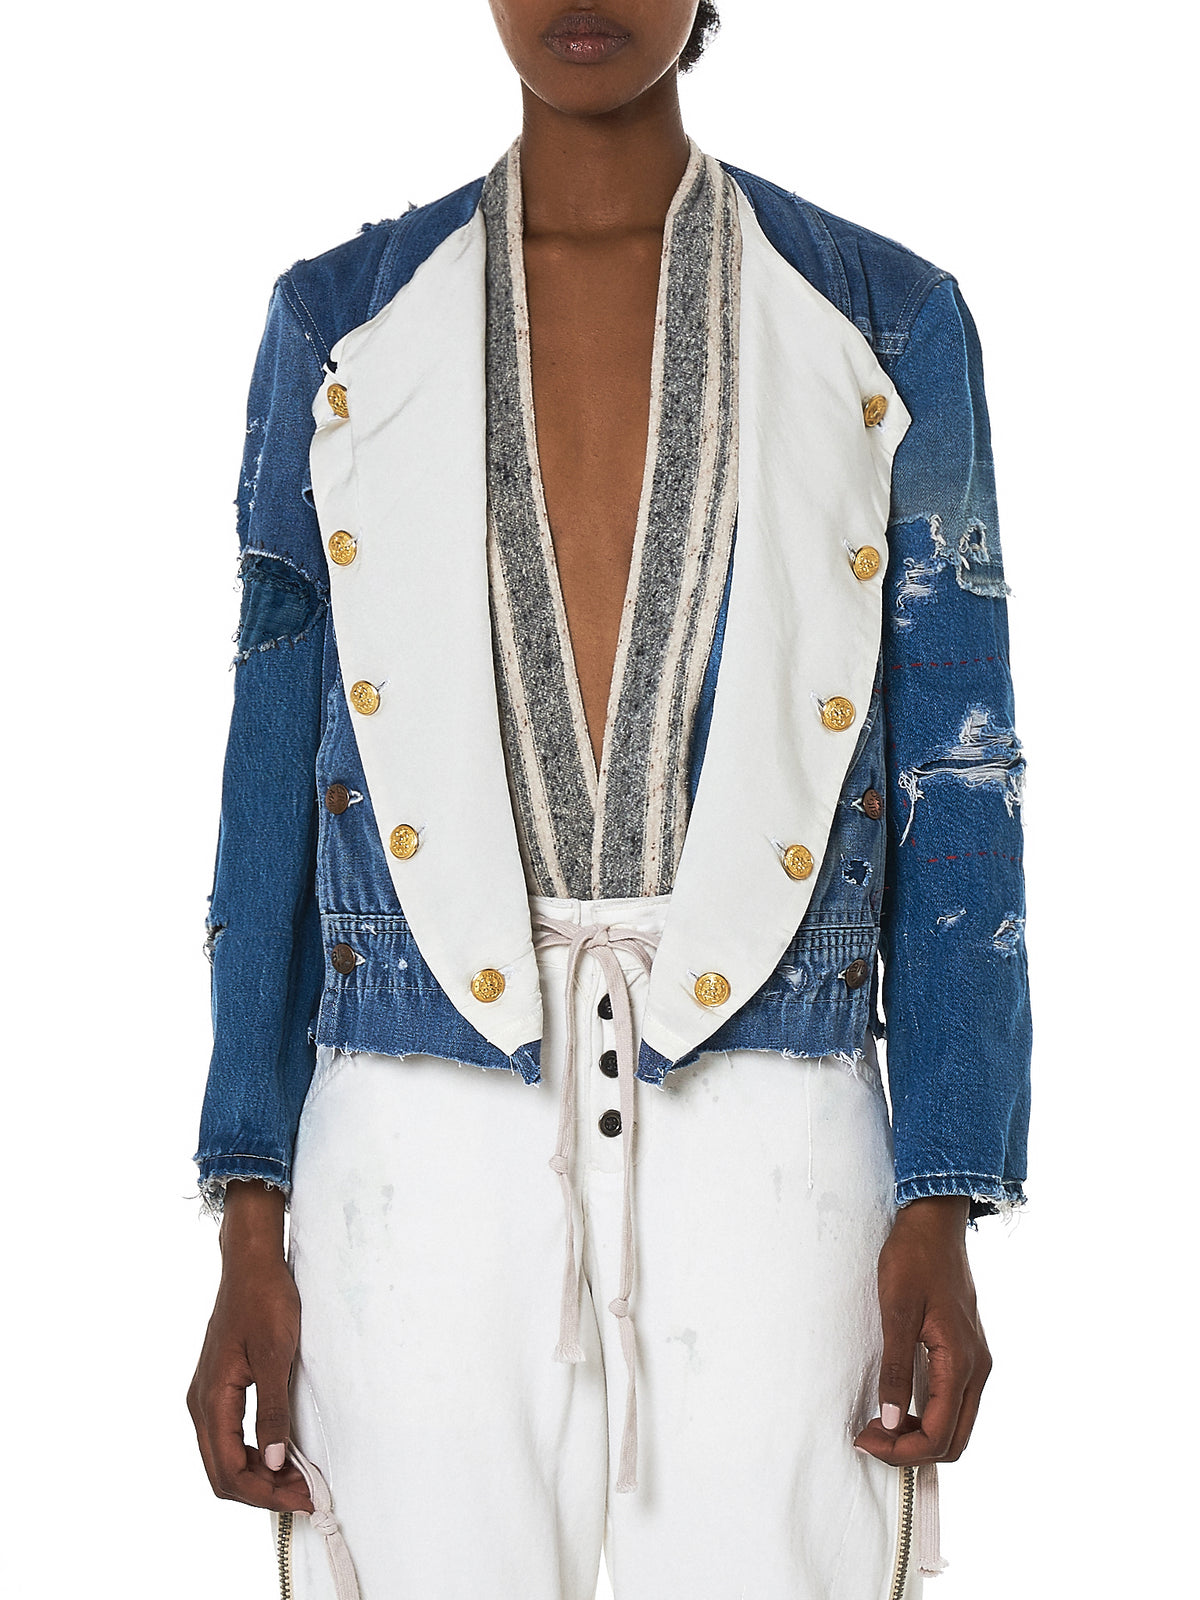 Greg Lauren Denim Jacket - Hlorenzo Front